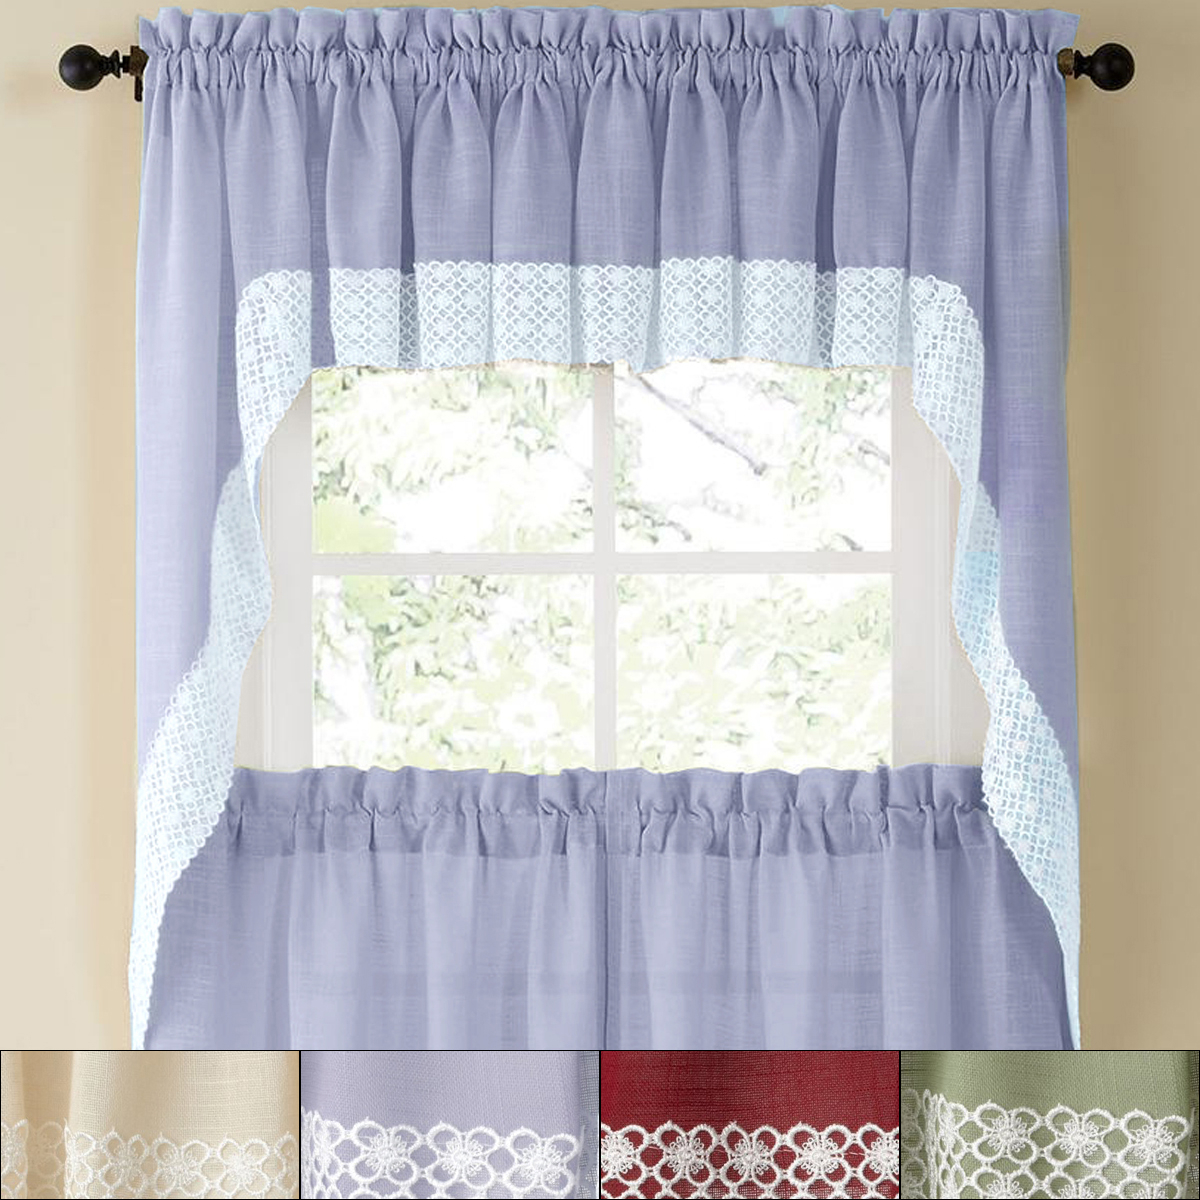 """Details About Salem Kitchen Window Curtain W/ Lace Trim – 38"""" Swag Pair Within Most Up To Date Ivory Knit Lace Bird Motif Window Curtain (View 19 of 20)"""